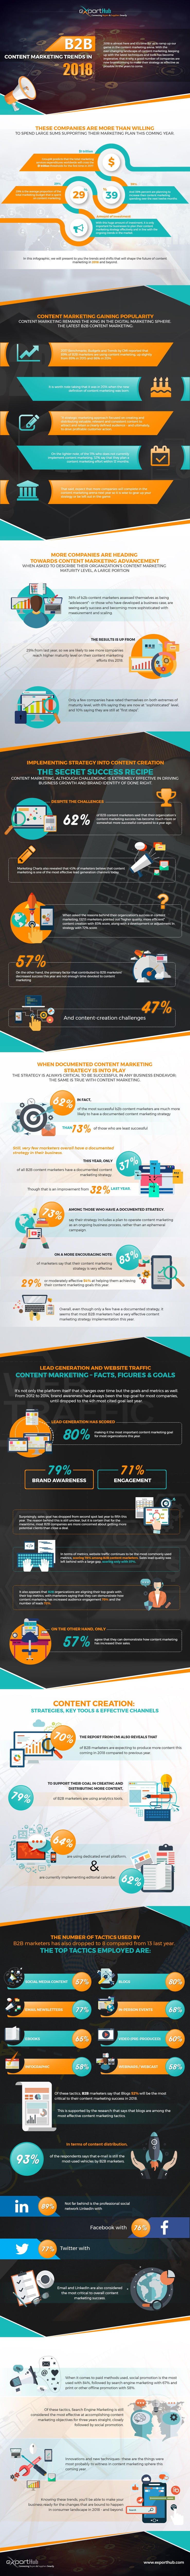 3 Keys to Develop a Powerful Tone of Voice in Content Marketing [Infographic]